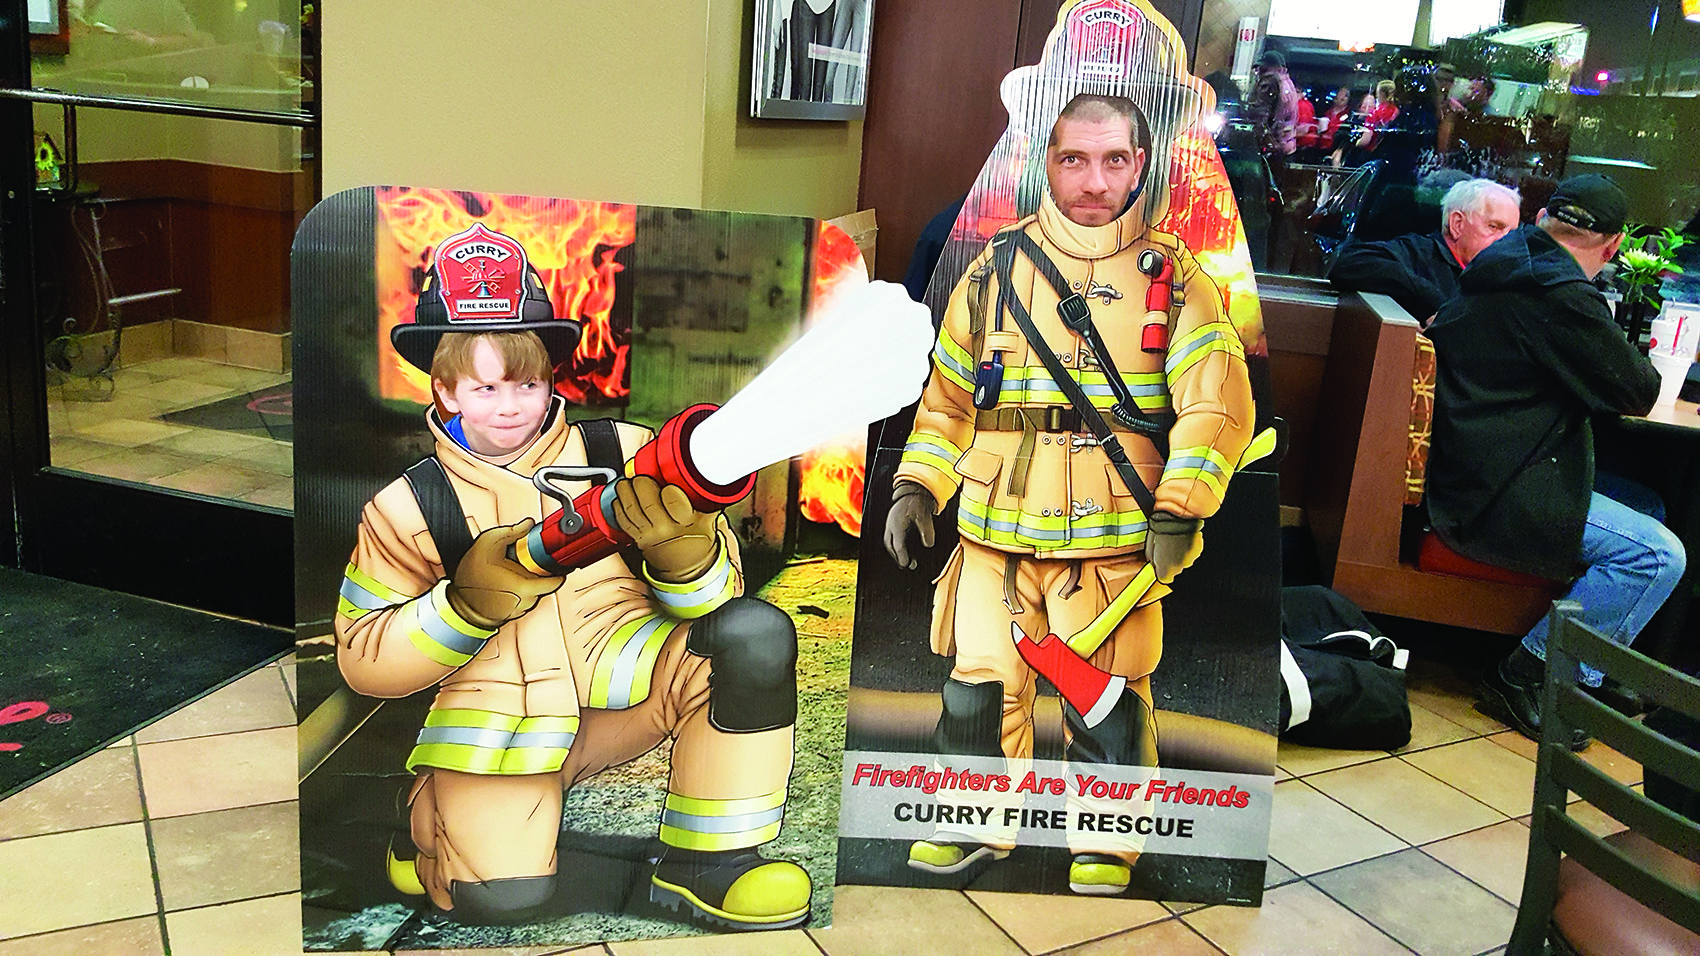 Tucker Reed Gaines and his father, Tim Gaines, a volunteer firefighter with the Curry Fire Rescue, had a little fun with the Curry Firefighter Standups during the second anniversary celebration of the Chik-fil-A Firefighter Aopreciation Day.